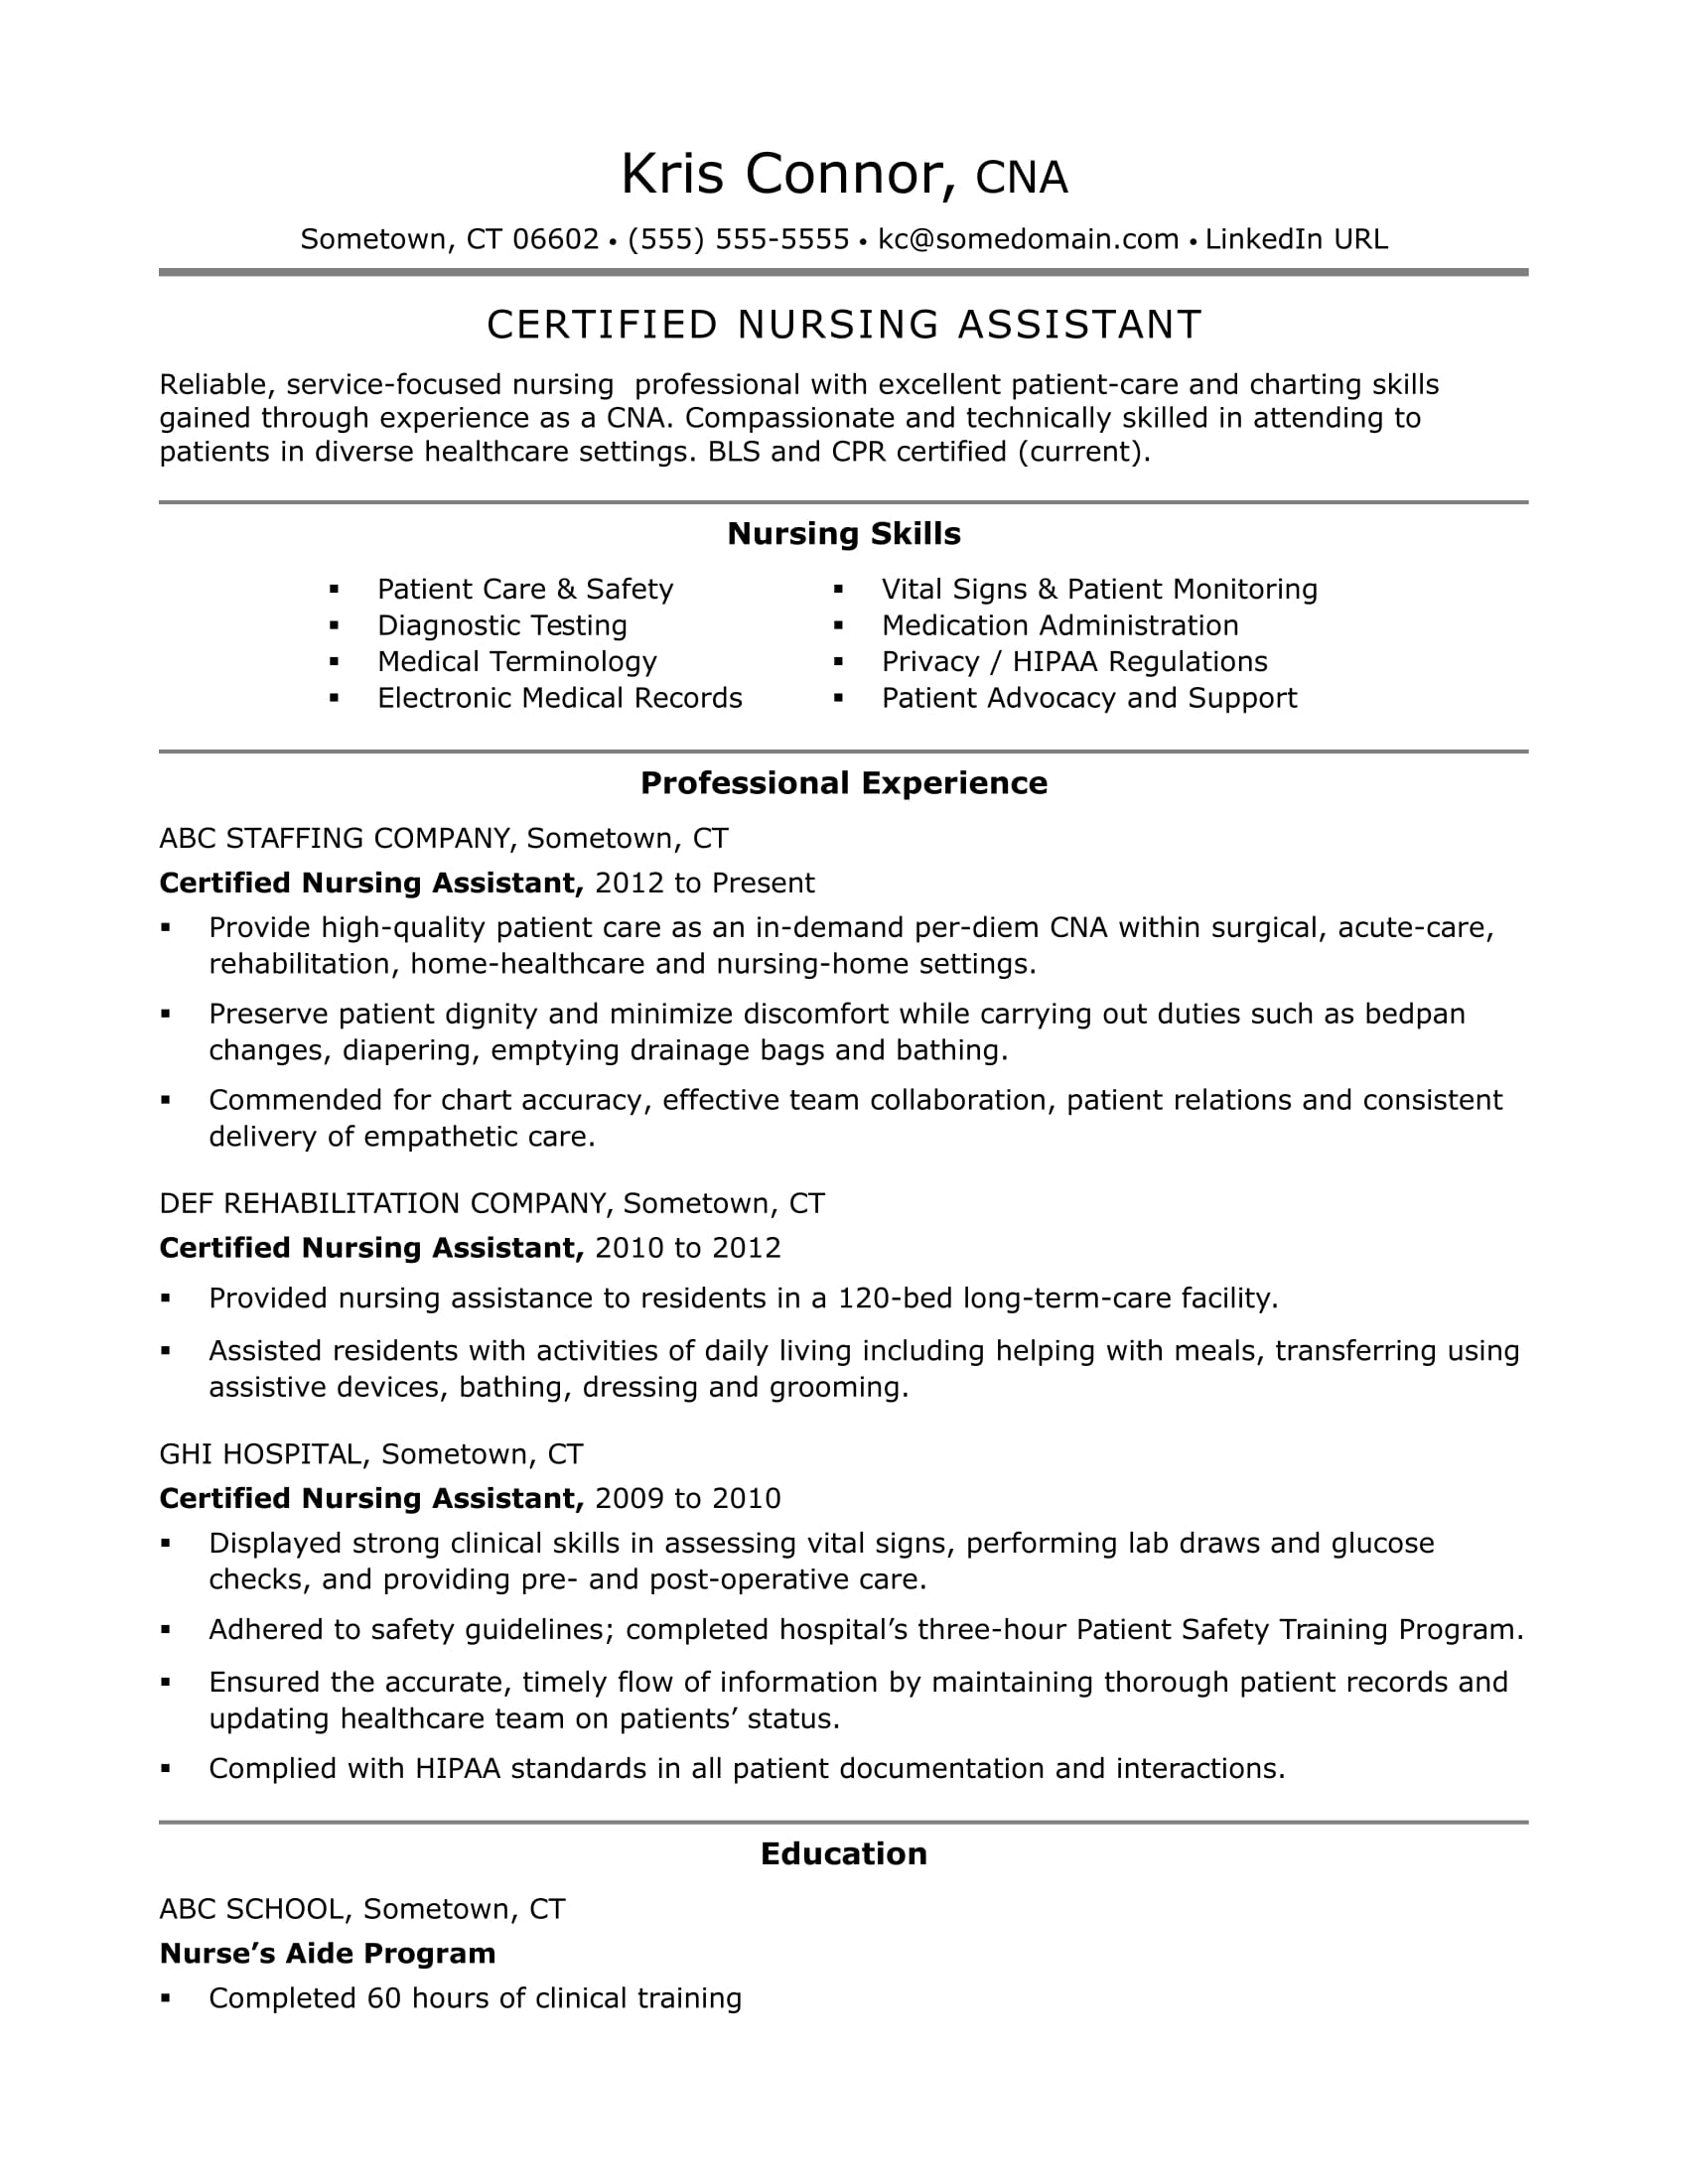 Sample Resume For Cna Position